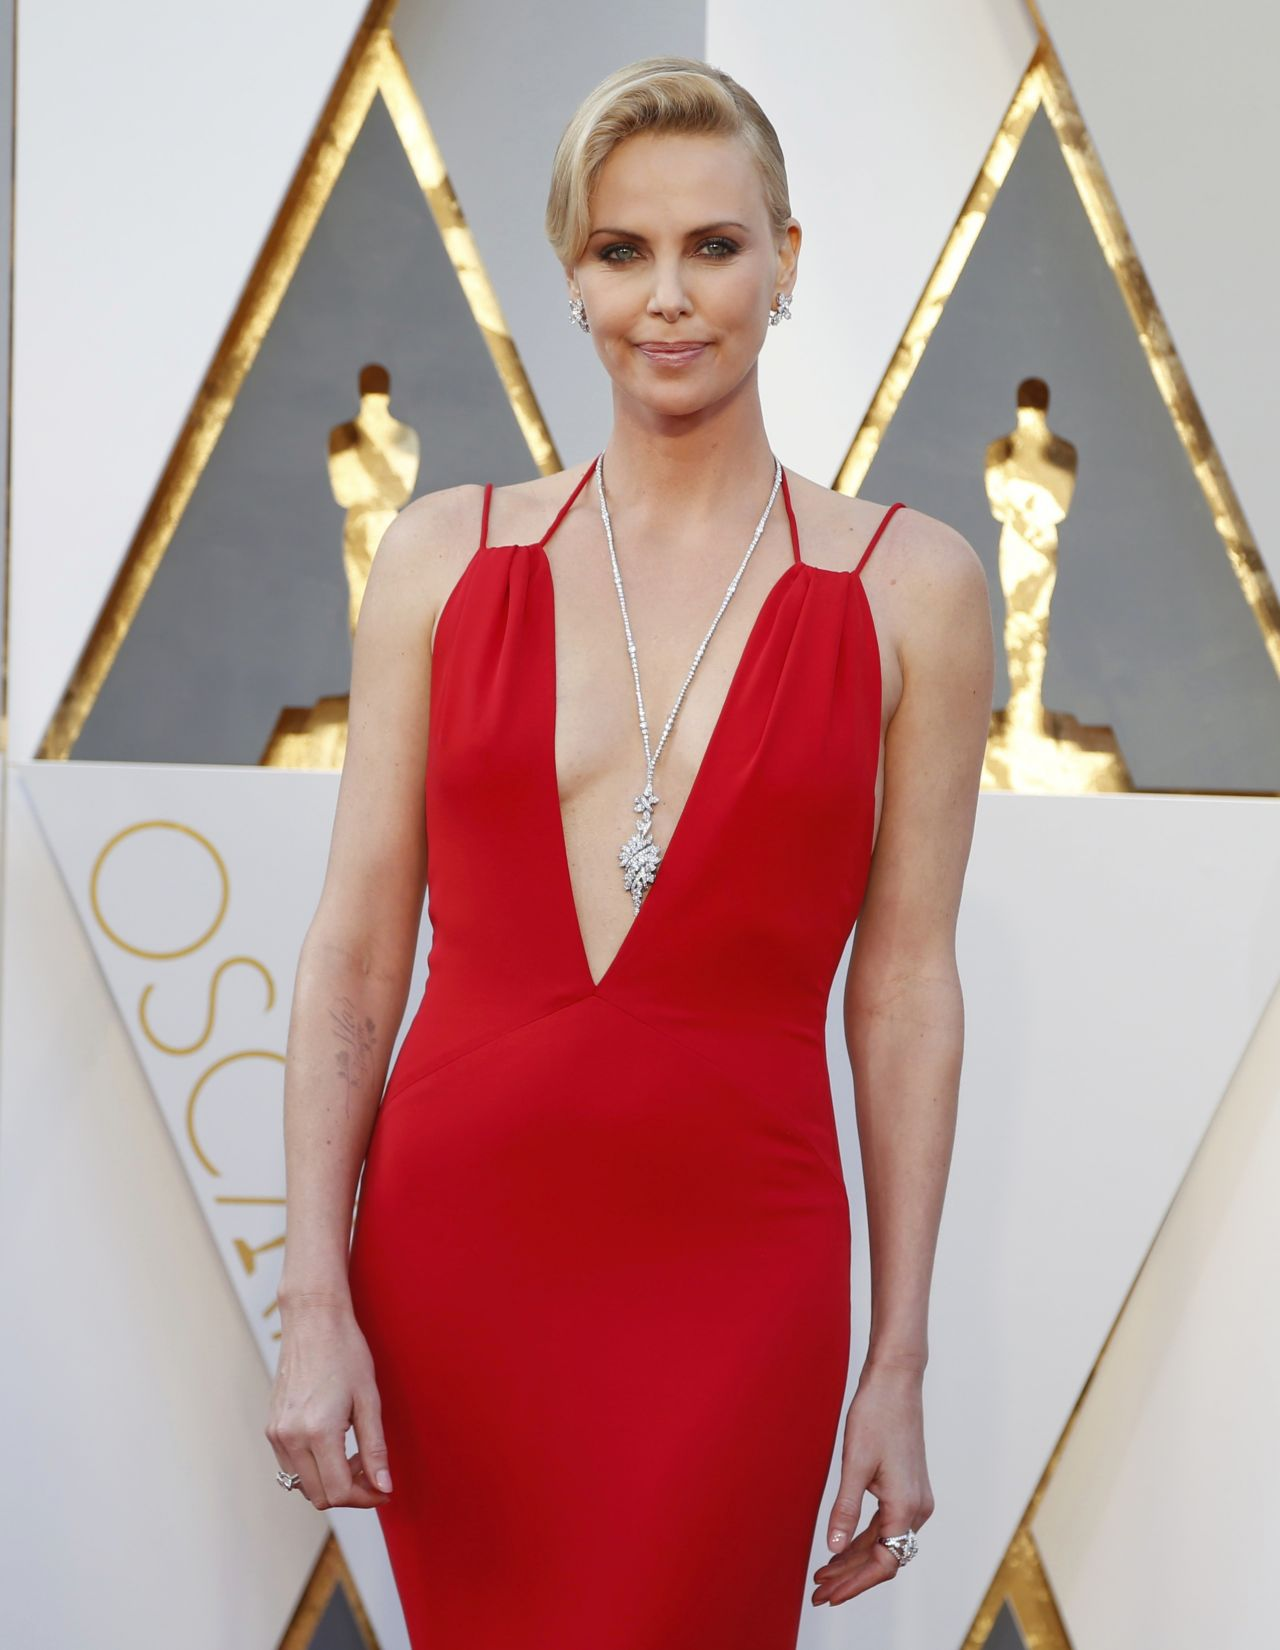 charlize-theron-oscars-2016-in-hollywood-ca-2-28-2016-1-1